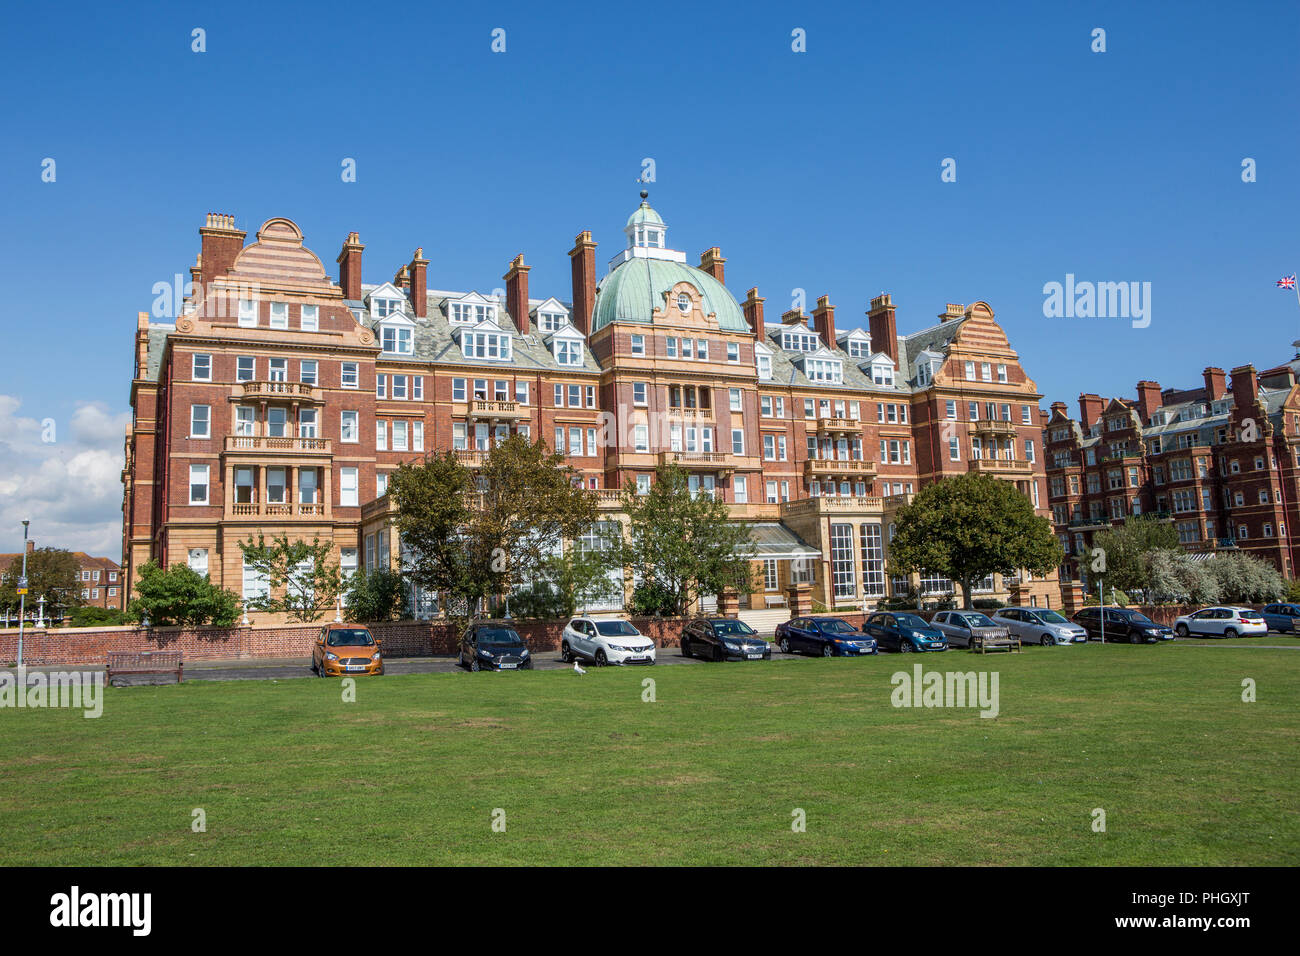 The Metropole, Folkestone - Stock Image